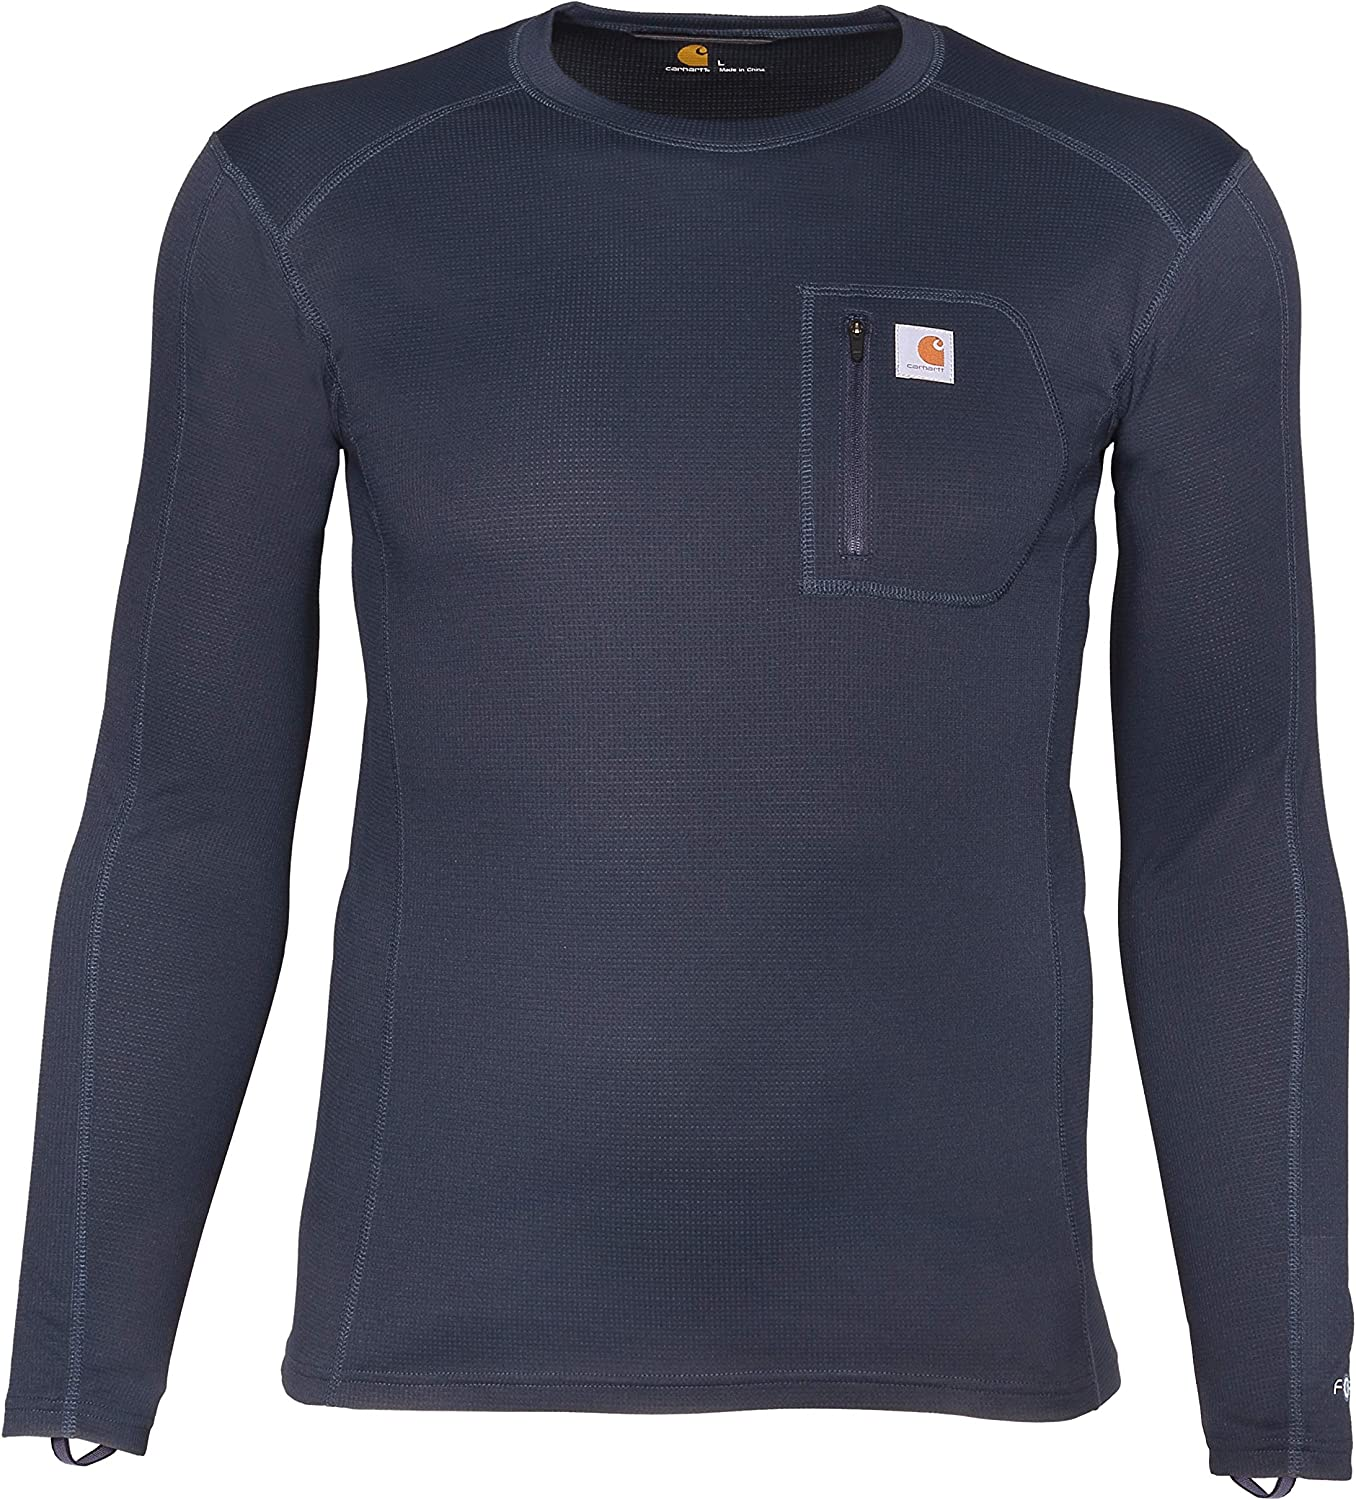 Carhartt Base Layer Men's Tall Size Force Midweight Tech Thermal Base Layer Long Sleeve Shirt